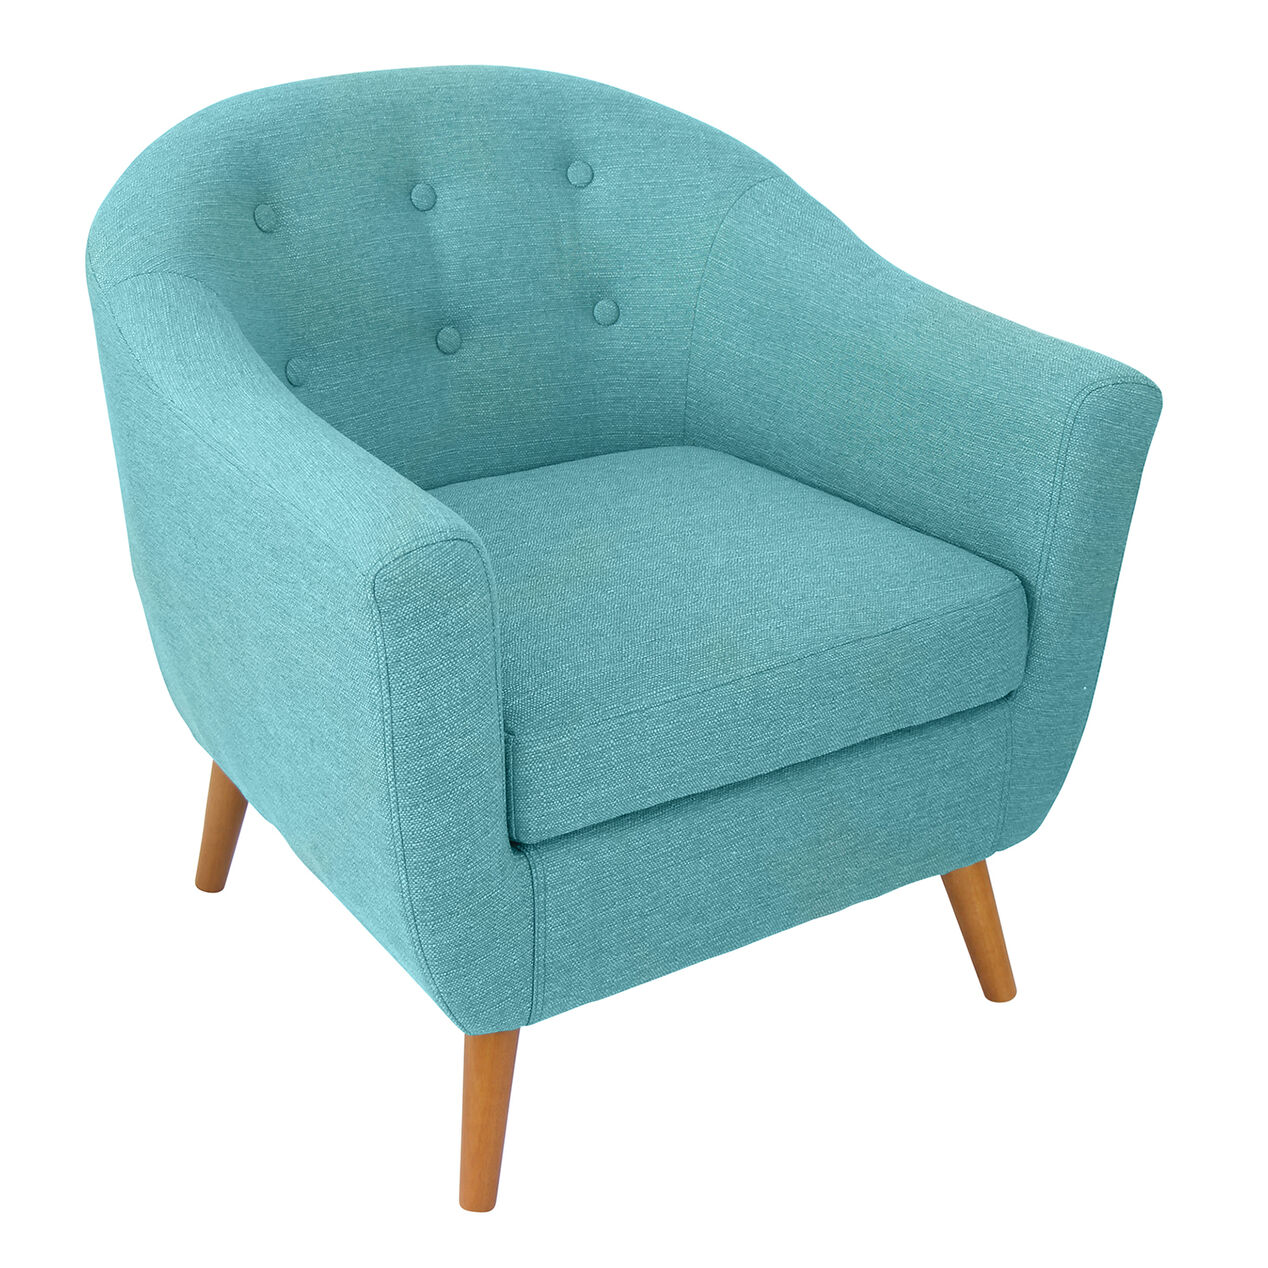 Aqua accent chair -  Rockwell Accent Chair Teal